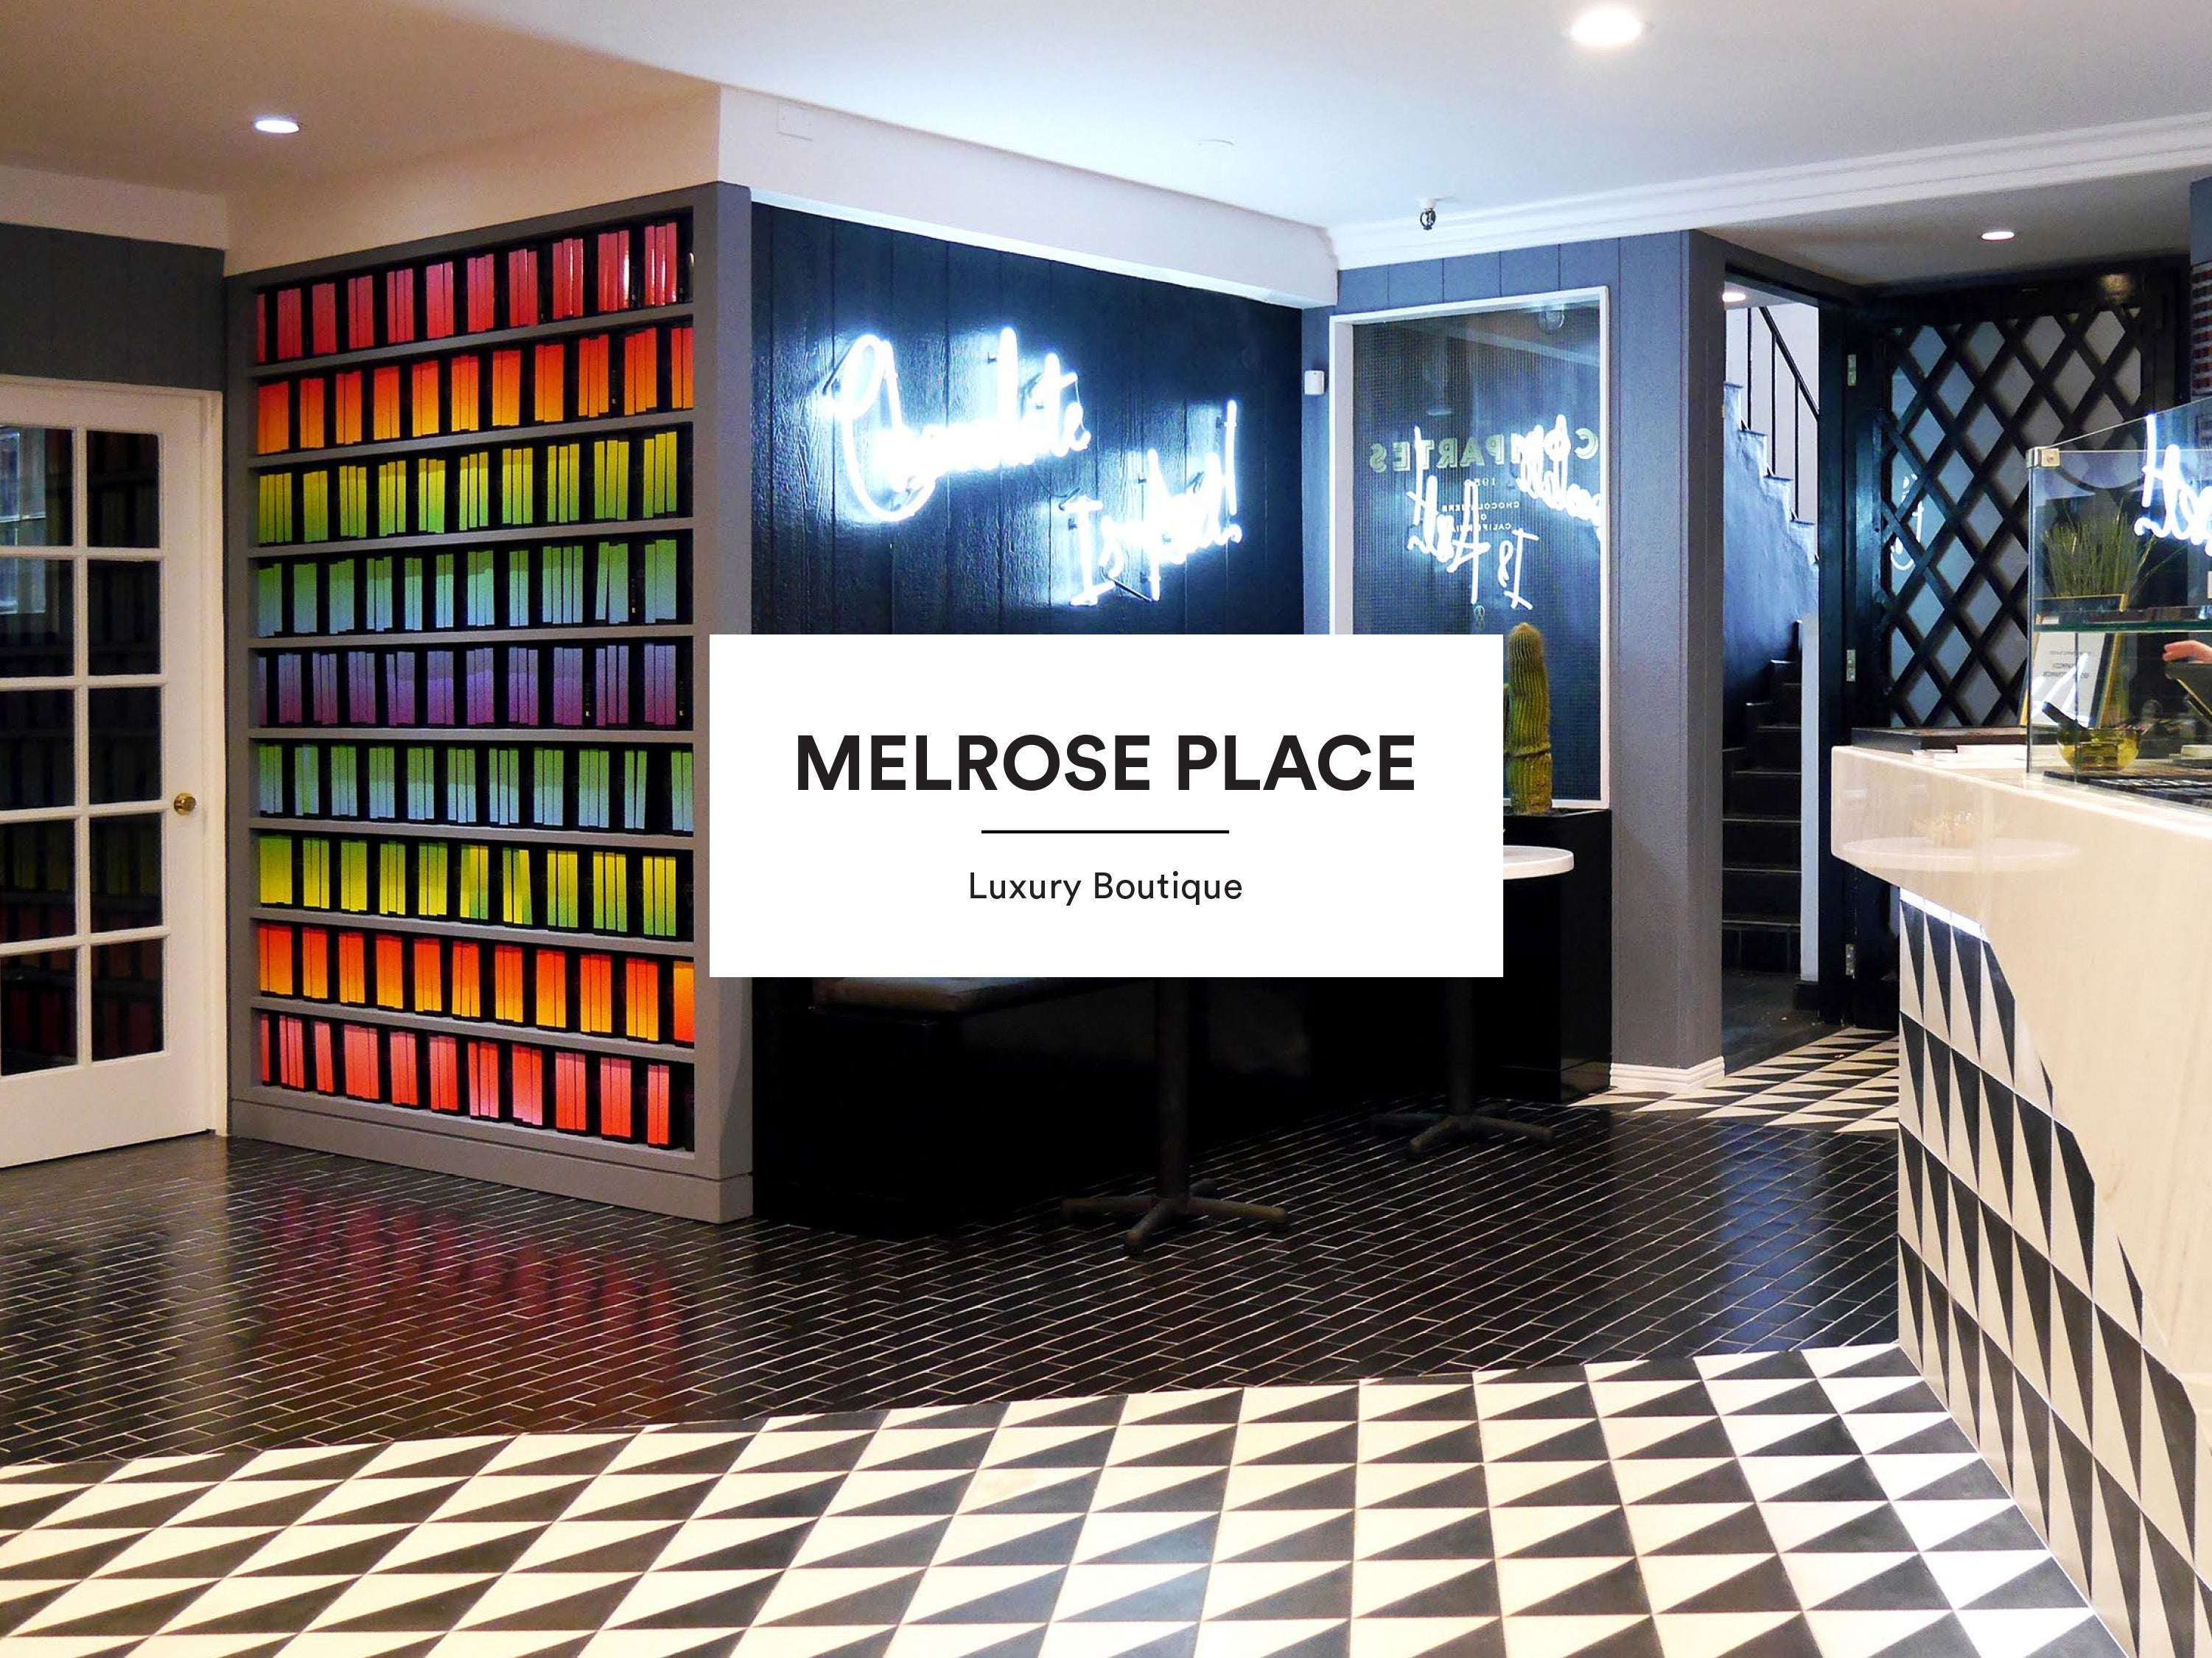 Compartes Melrose Place Luxury Chocolate Shop